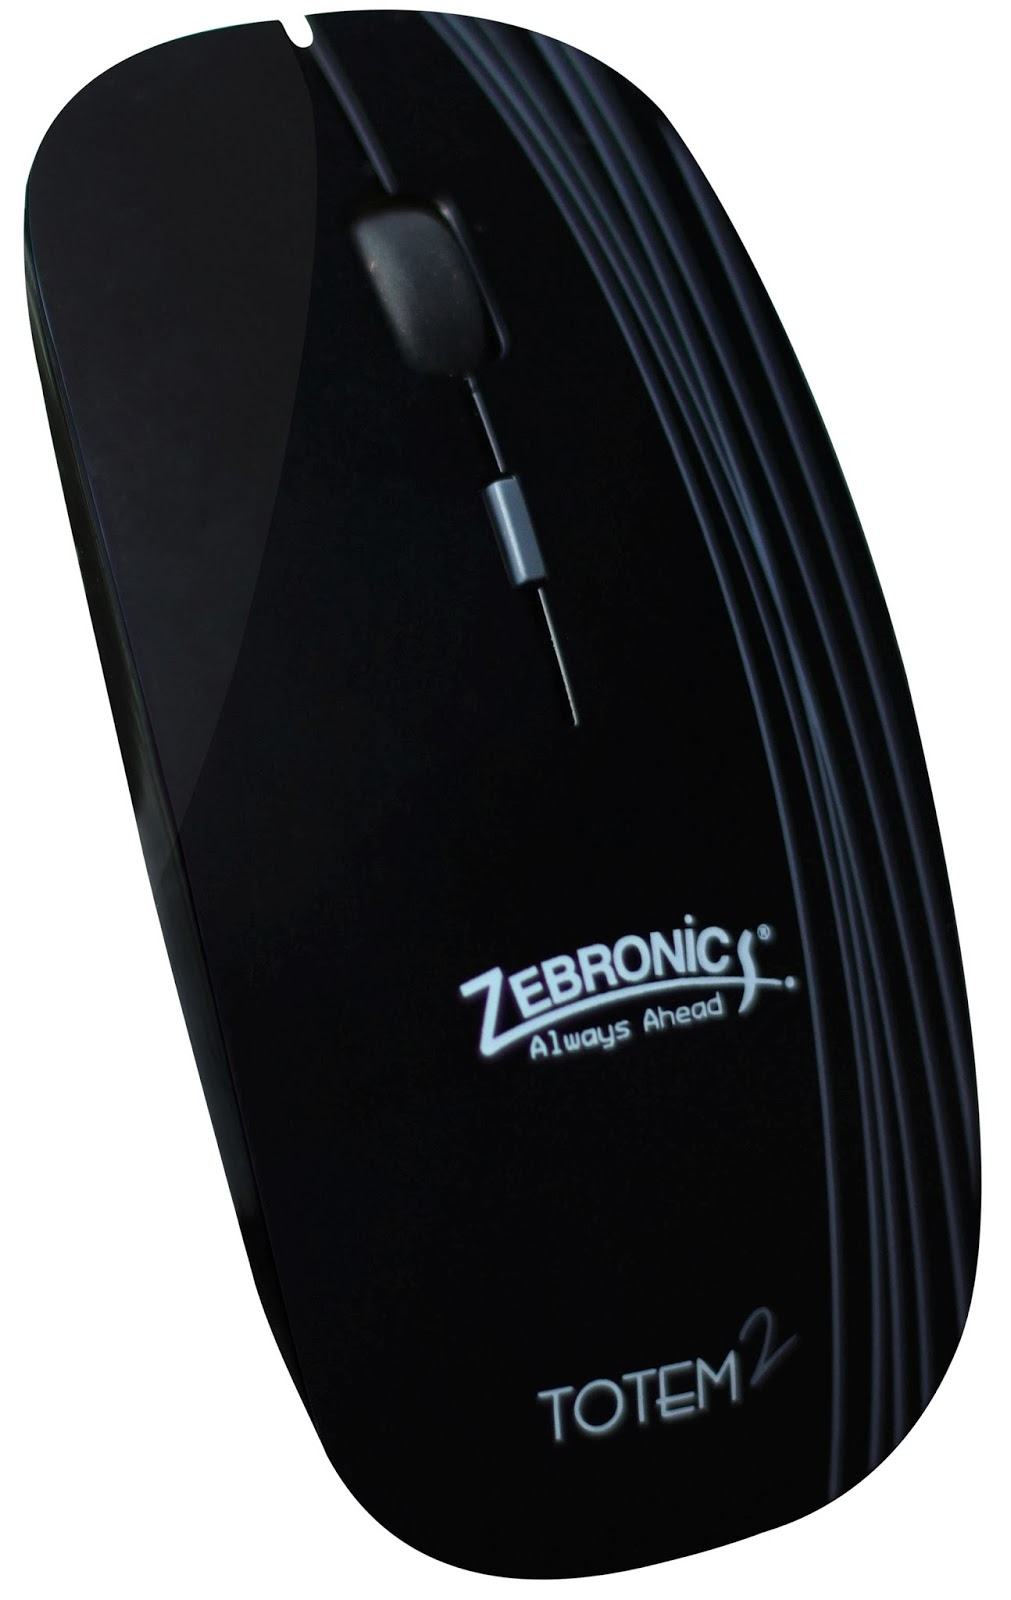 Zebronics unveils The Totem 2 Wireless Optical Mouse